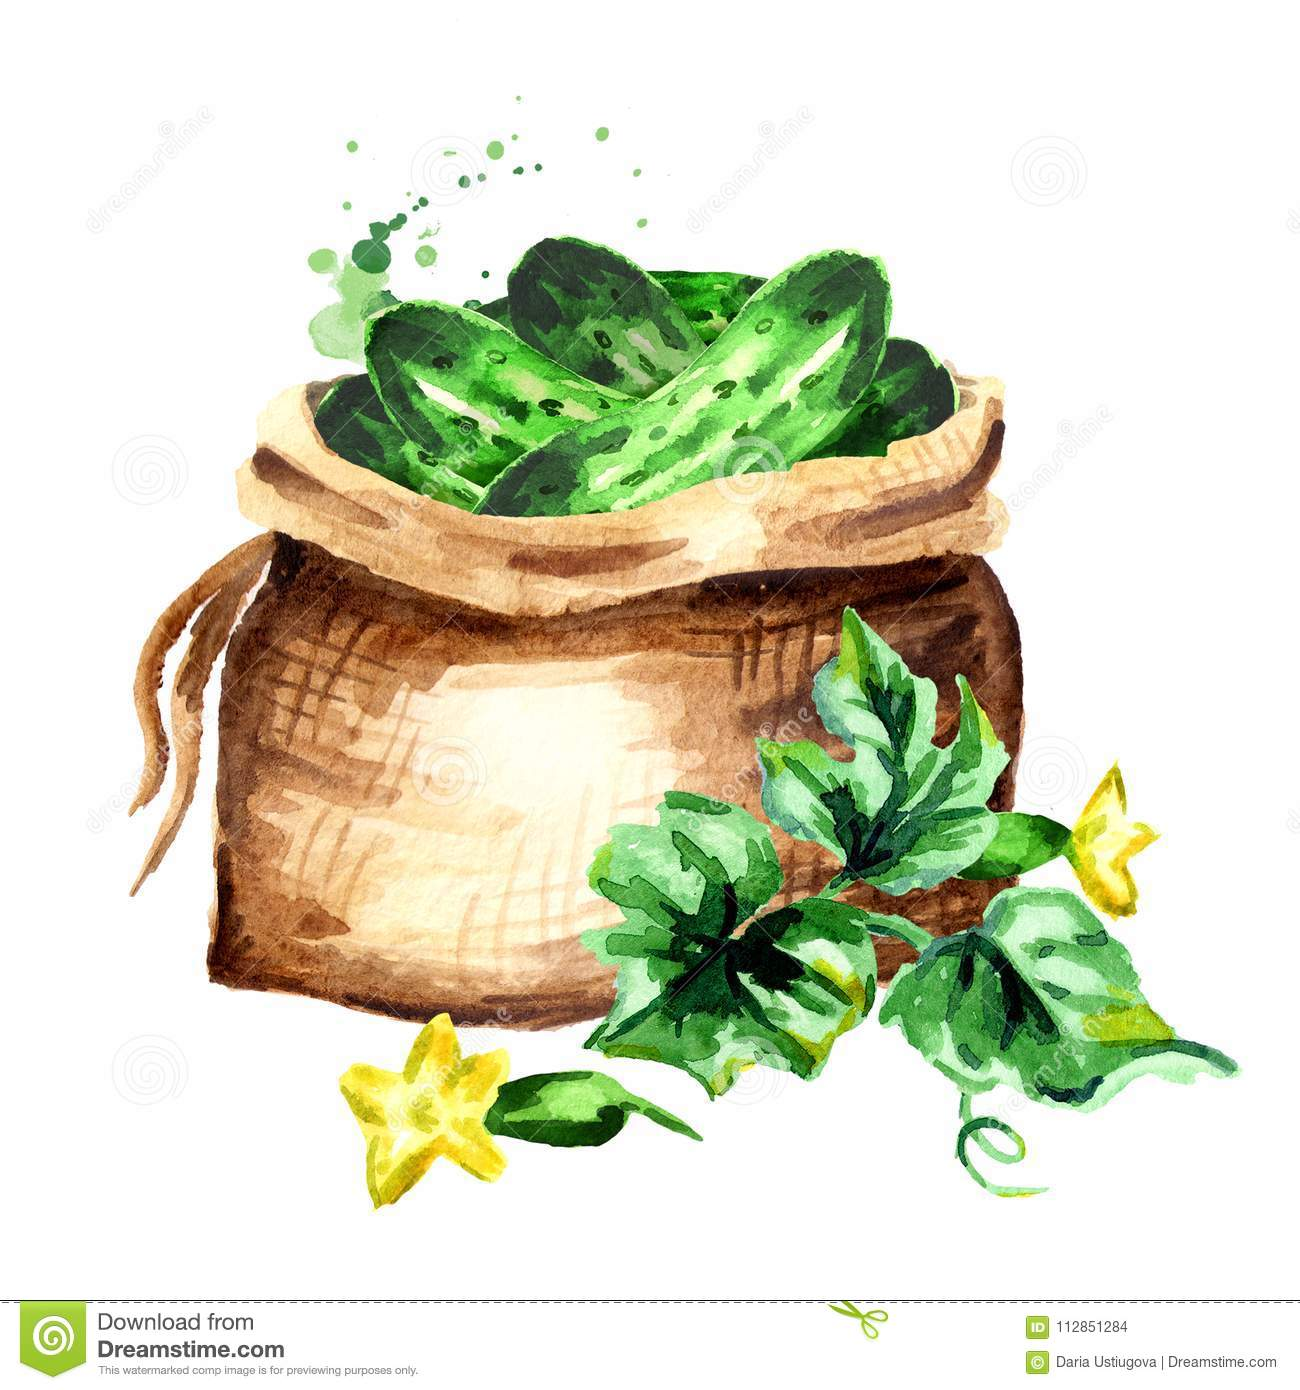 Sack with cucumbers. Watercolor hand drawn illustration, isolated on white background